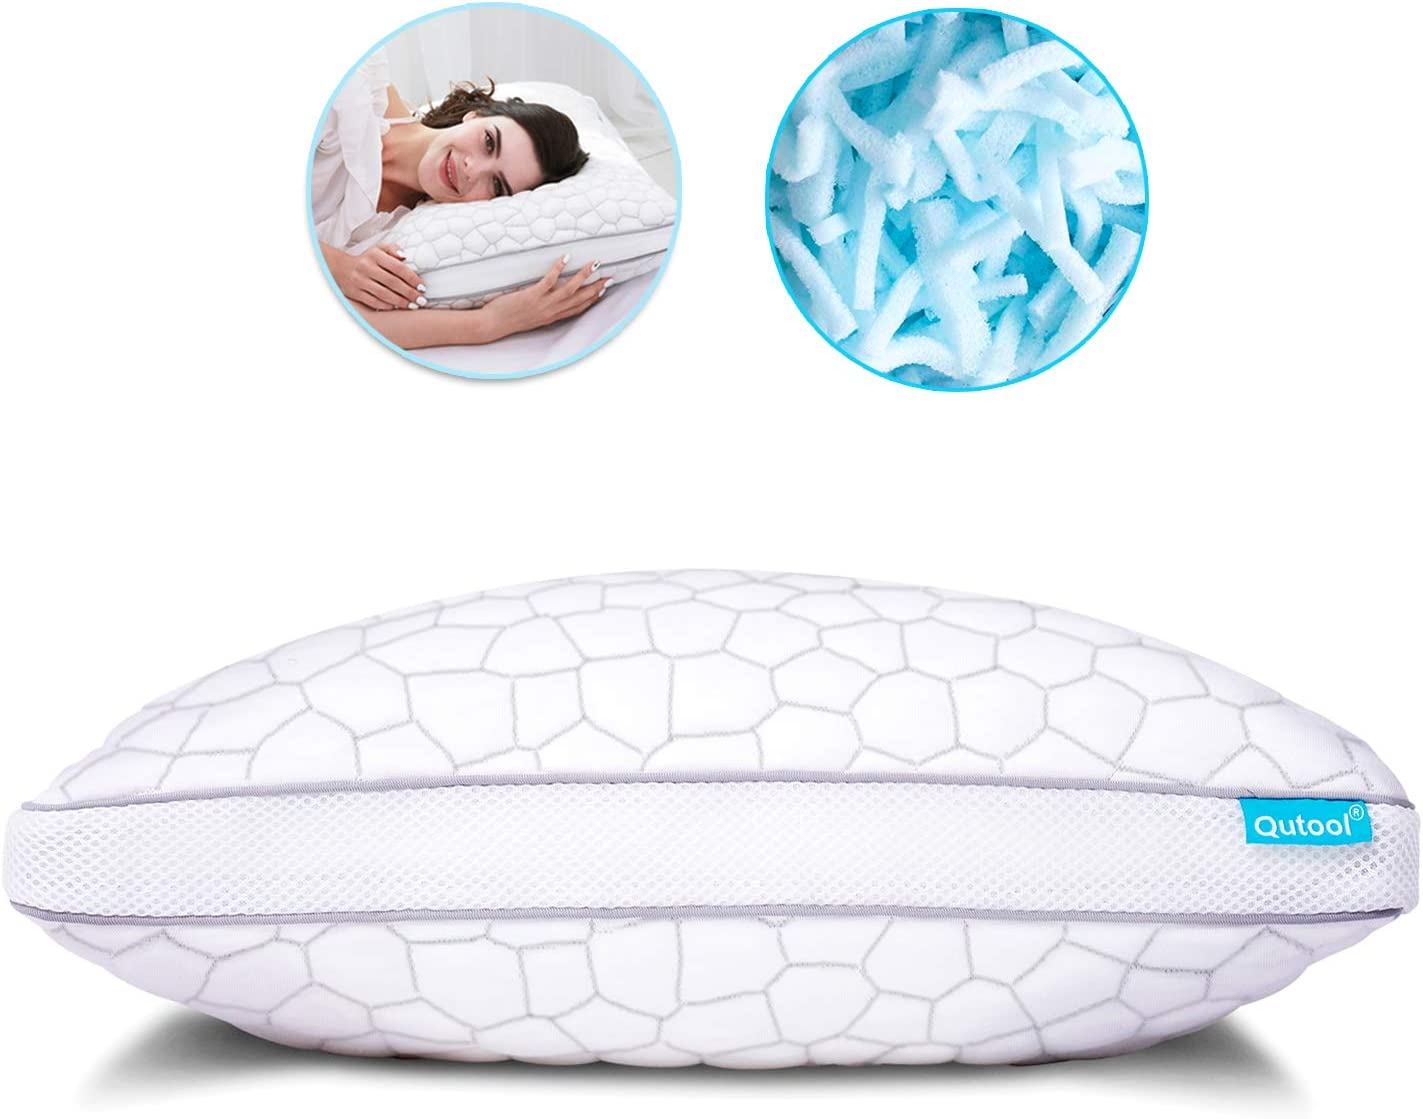 Shredded Memory Foam Pillows for Sleeping, Bamboo Cooling Pillow with Ajustable Loft - Hypoallergenic Bed Pillow for Side and Back Sleepers with Washable Removable Cover Queen Size 1-Pack